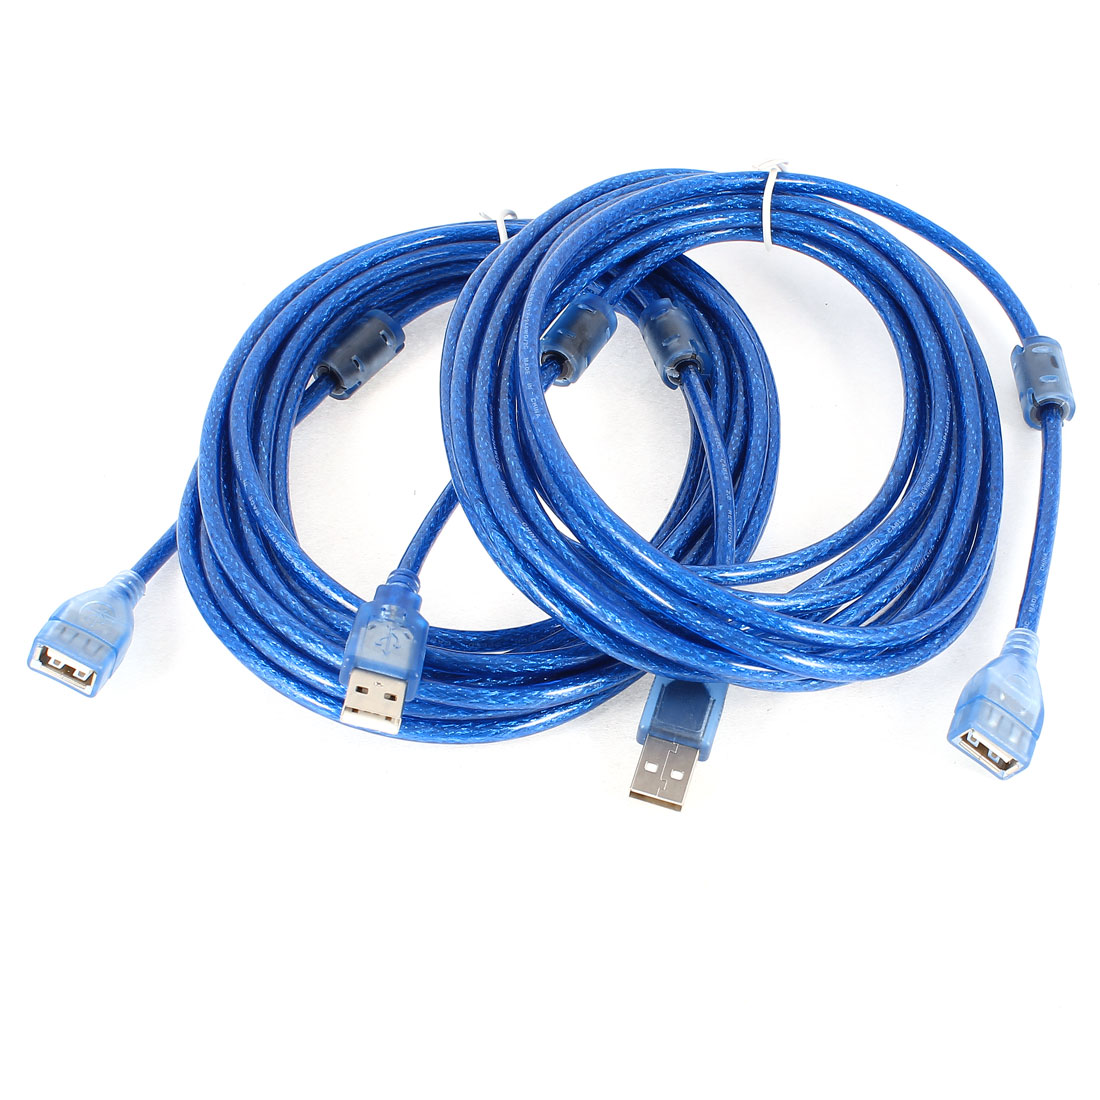 2 Pcs 5 Meter 16Ft USB 2.0 A Male to Female Extension Cable Cord Blue